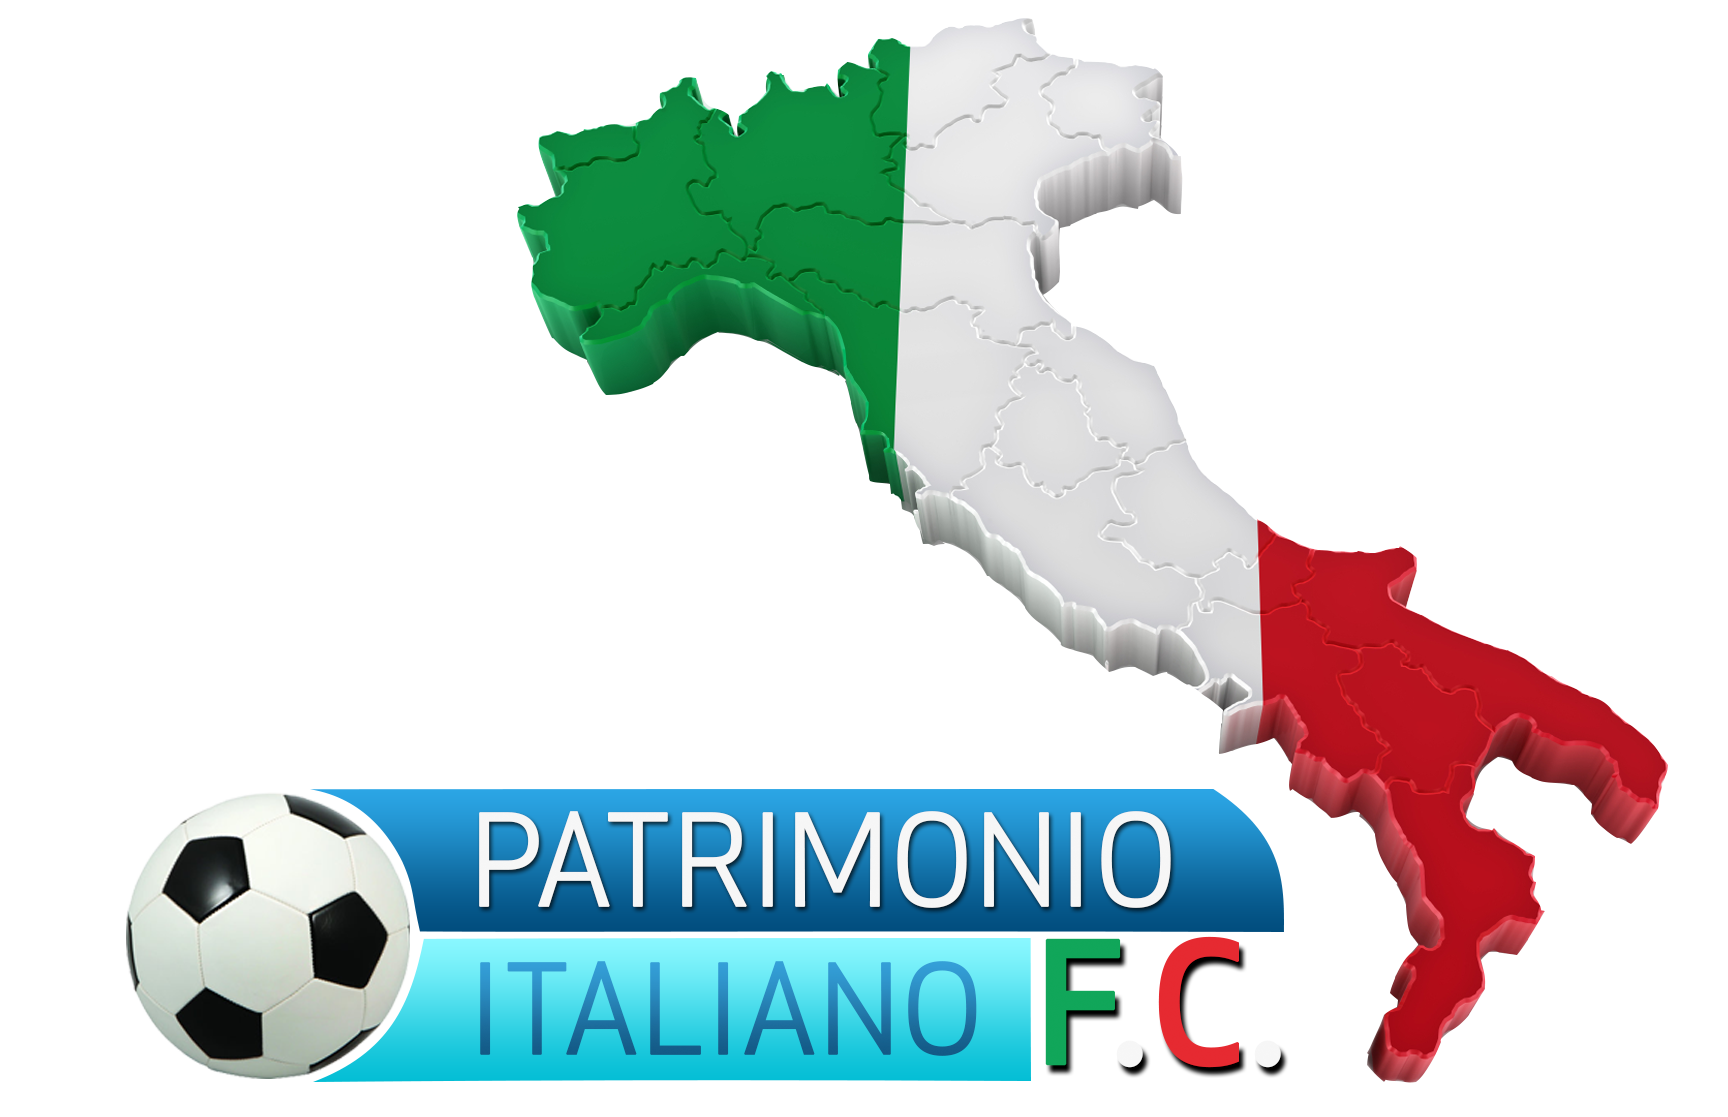 Patrimonio Italiano Football Club